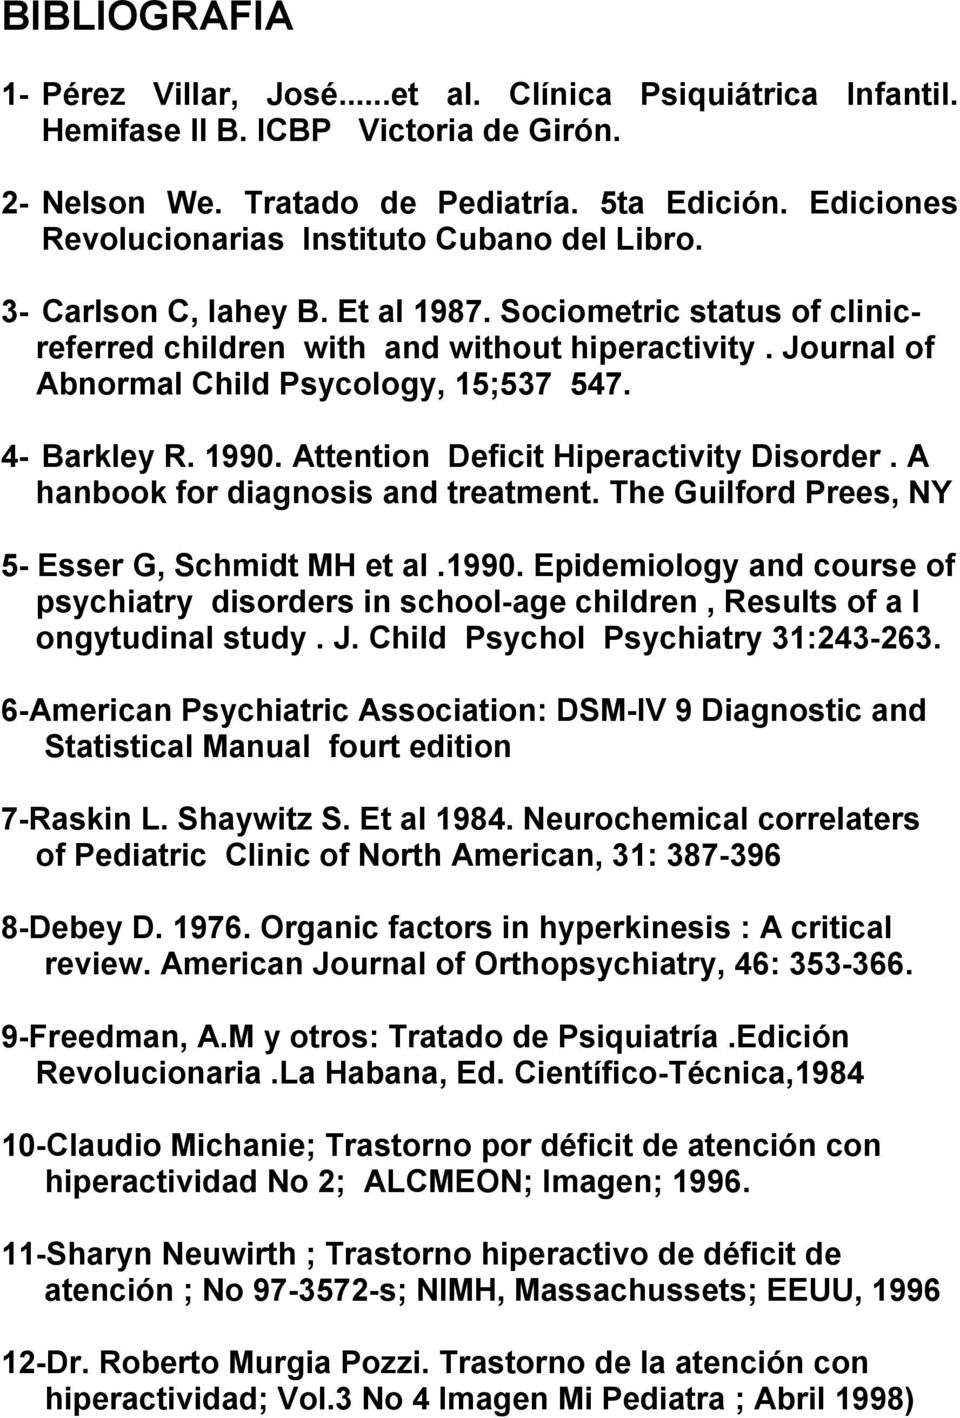 Journal of Abnormal Child Psycology, 15;537 547. 4- Barkley R. 1990. Attention Deficit Hiperactivity Disorder. A hanbook for diagnosis and treatment.